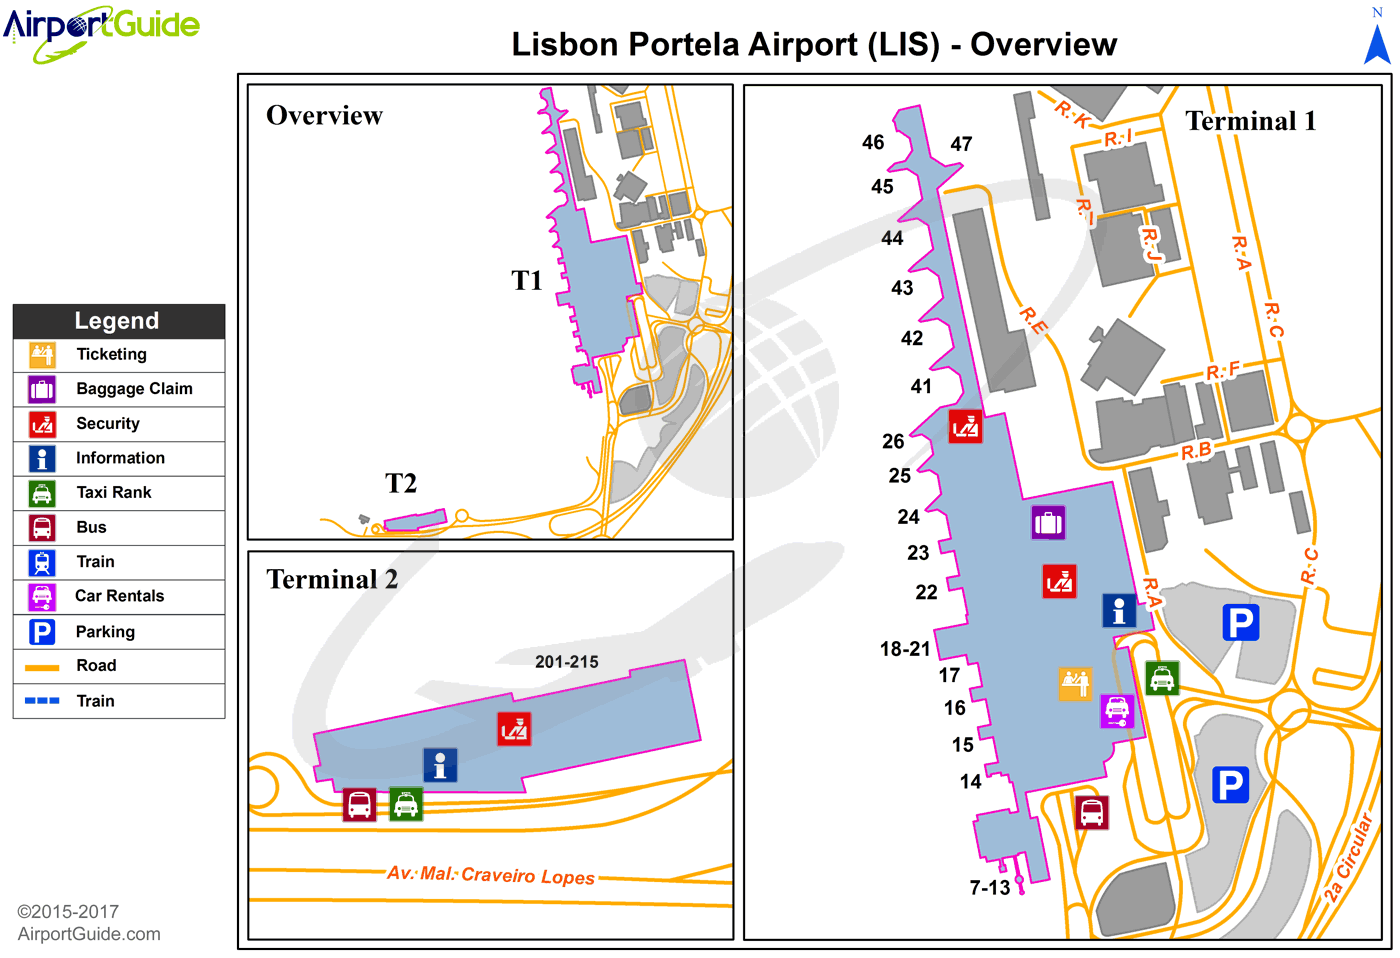 Lisbon - Cascais (LIS) Airport Terminal Map - Overview